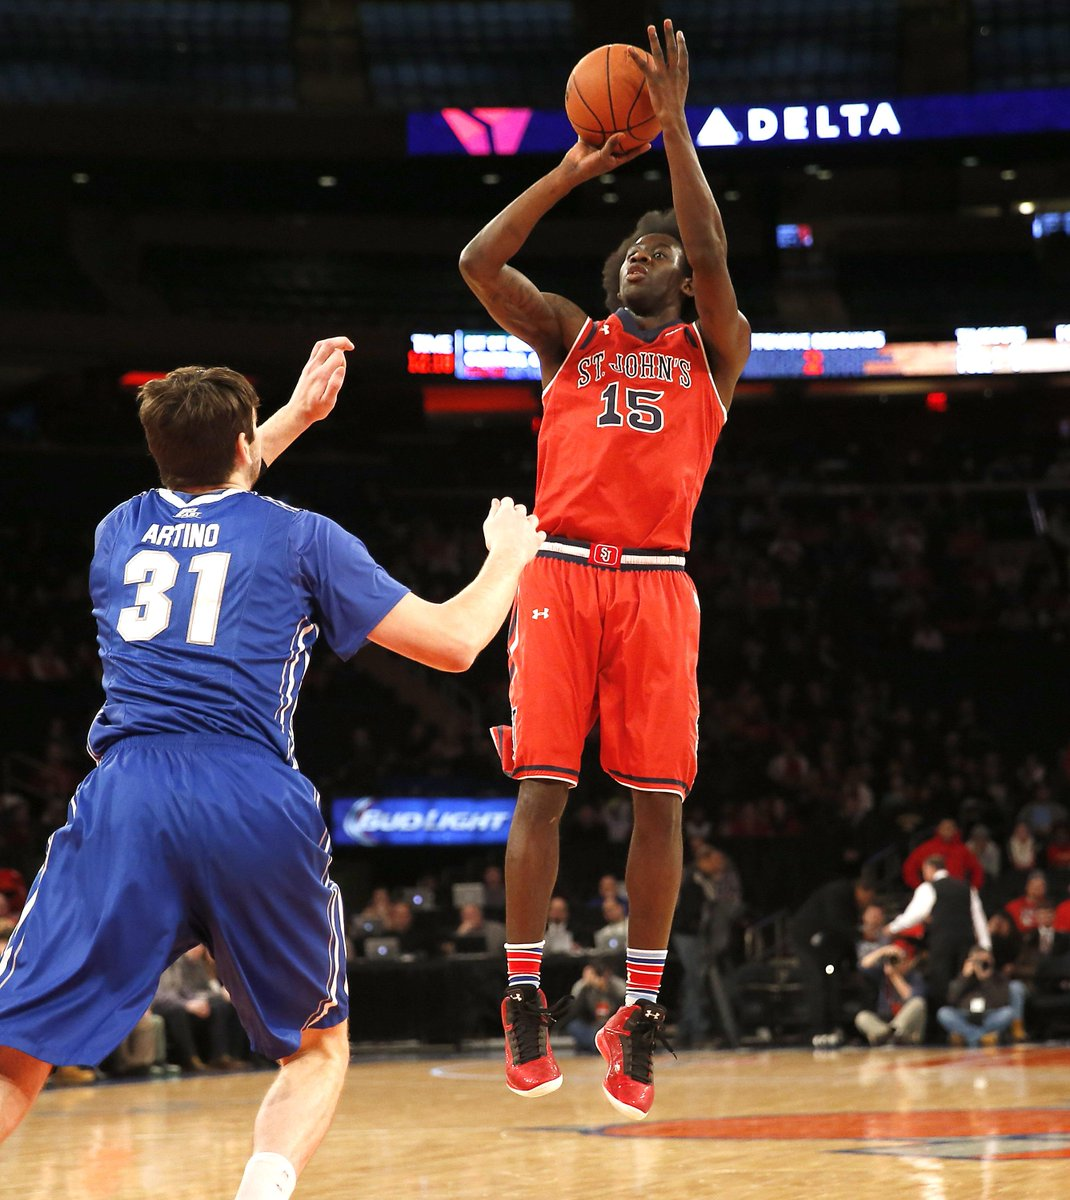 .@StJohnsBBall Sir'Dominic Pointer selected by the @cavs with the 53rd pick in the NBA Draft #SJUBB http://t.co/0CKFASqBOg